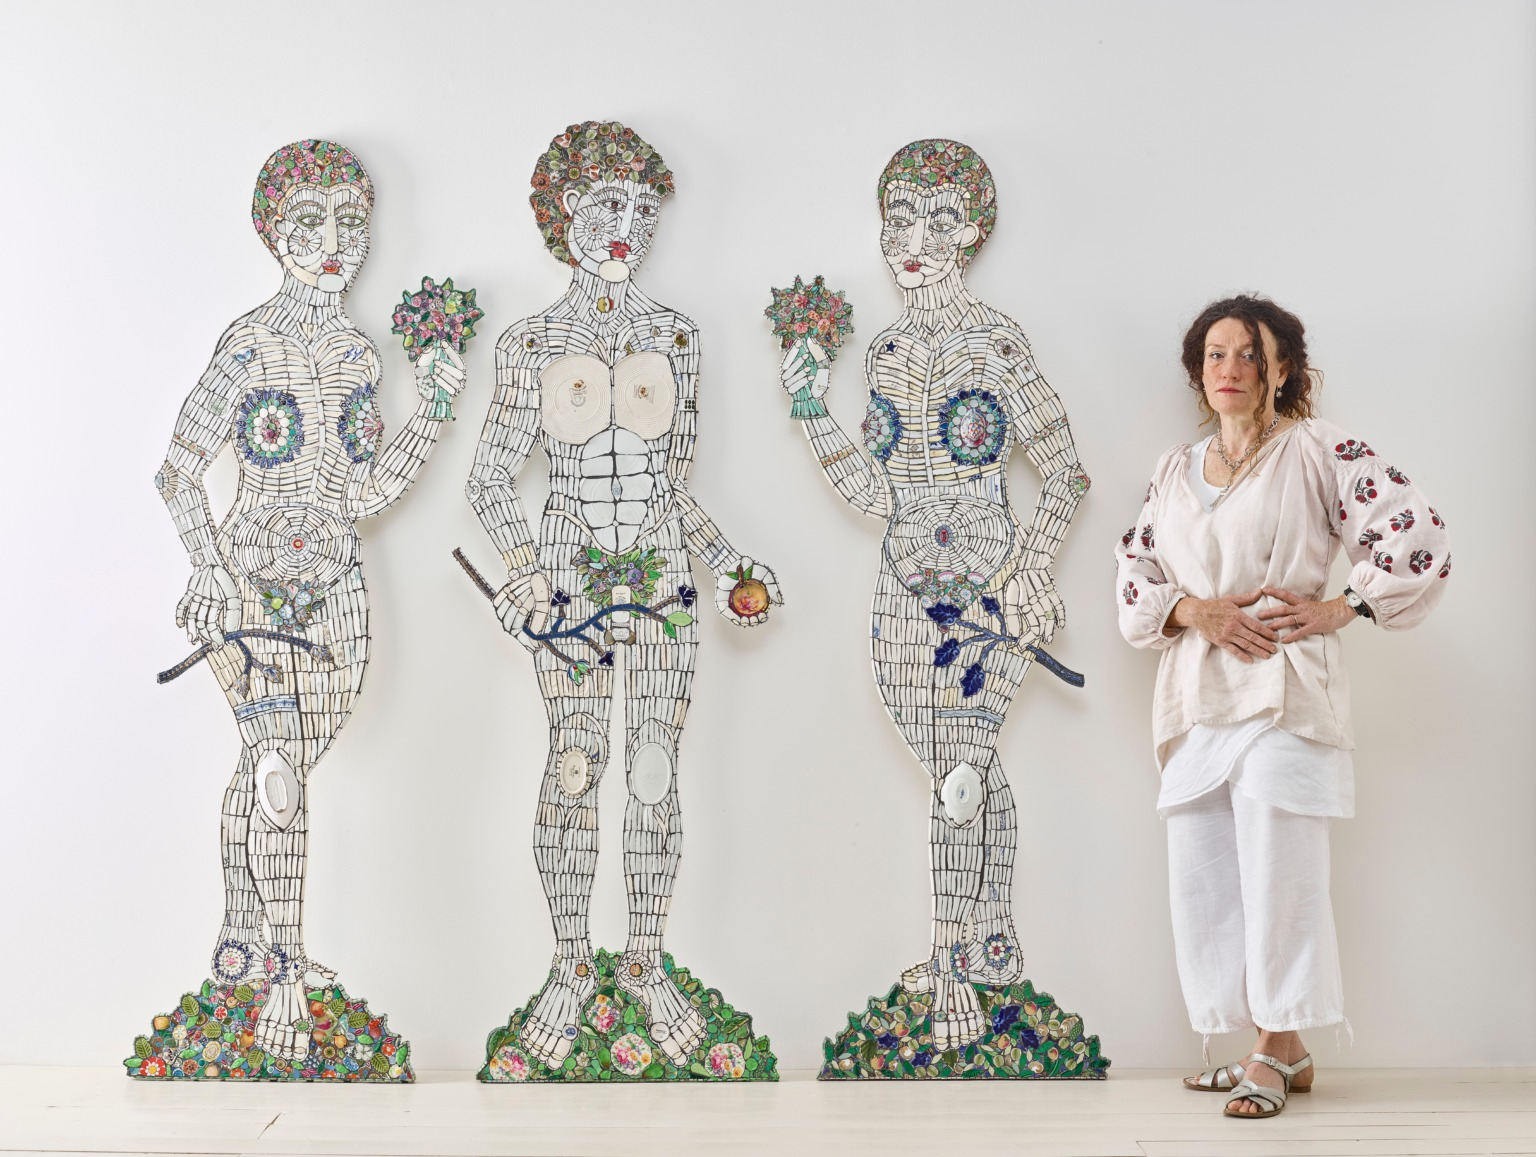 Three life size ceramic figures, with the artist stood to the right of them.